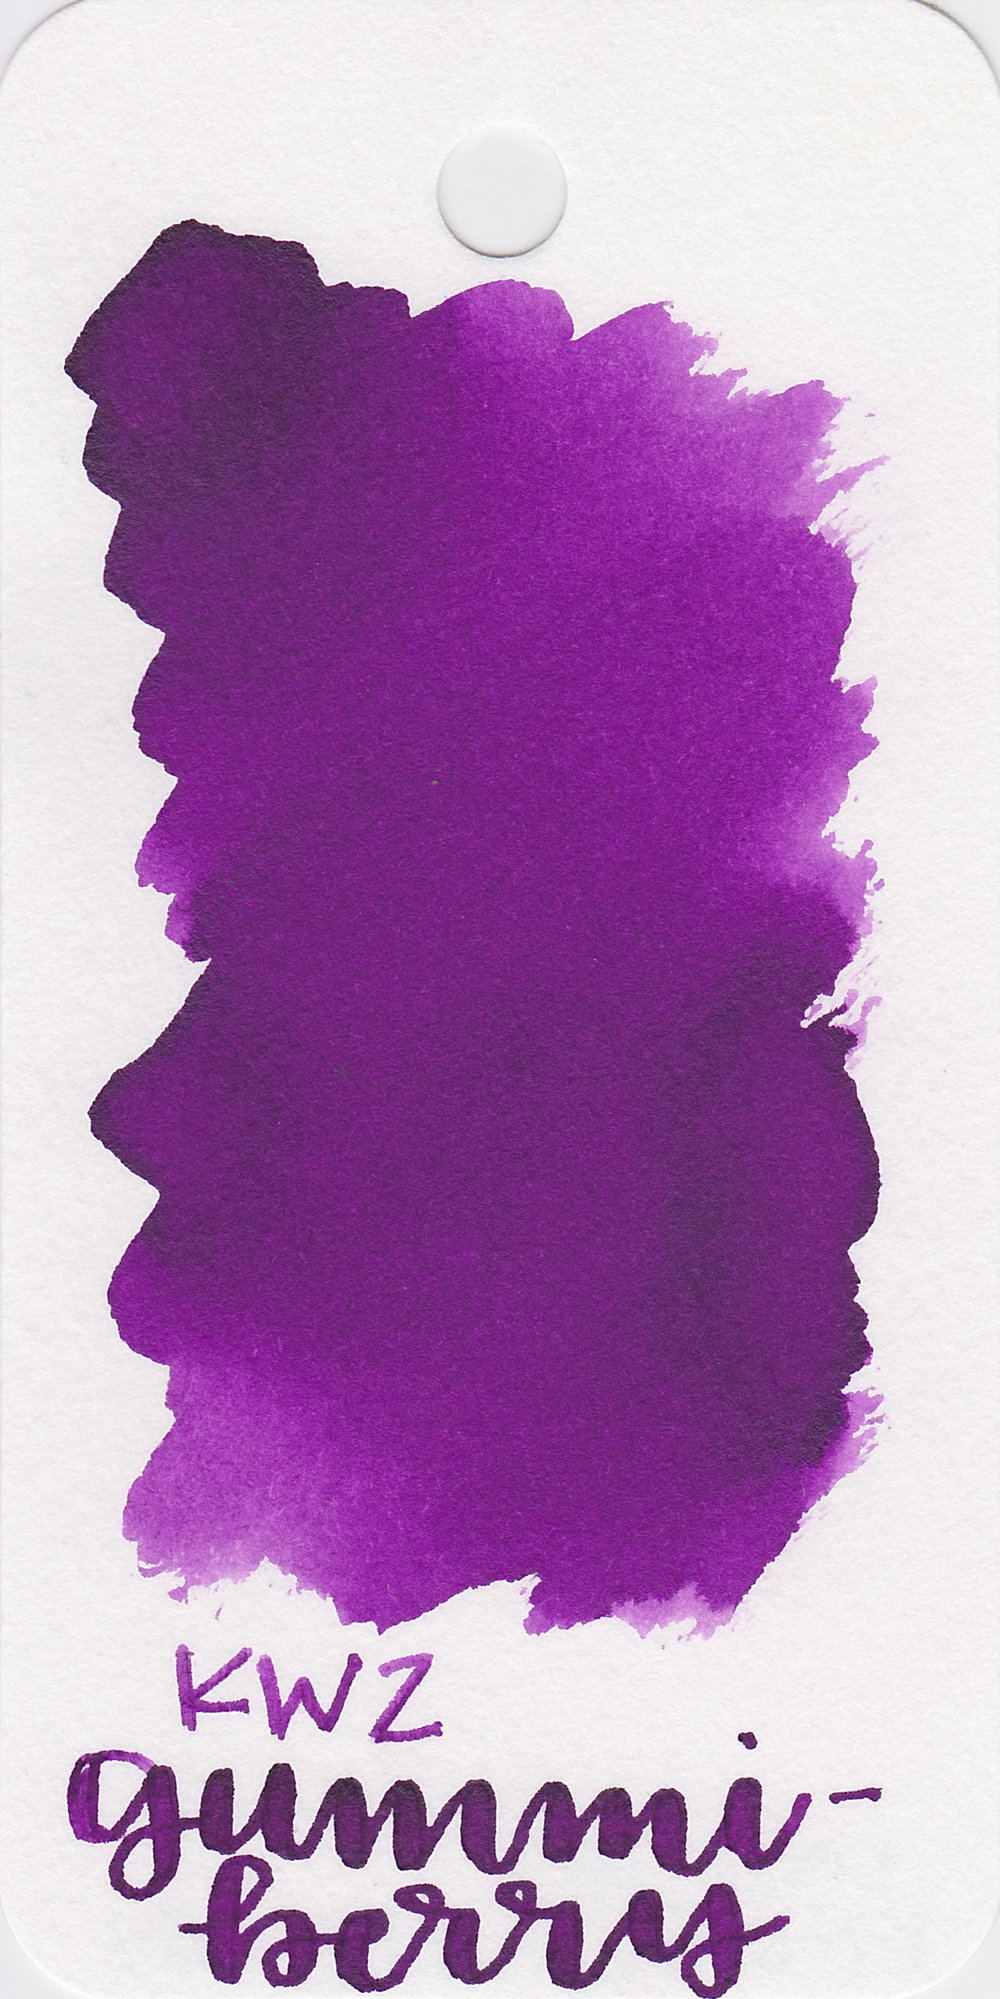 The color: - Gummiberry is a medium, saturated purple.